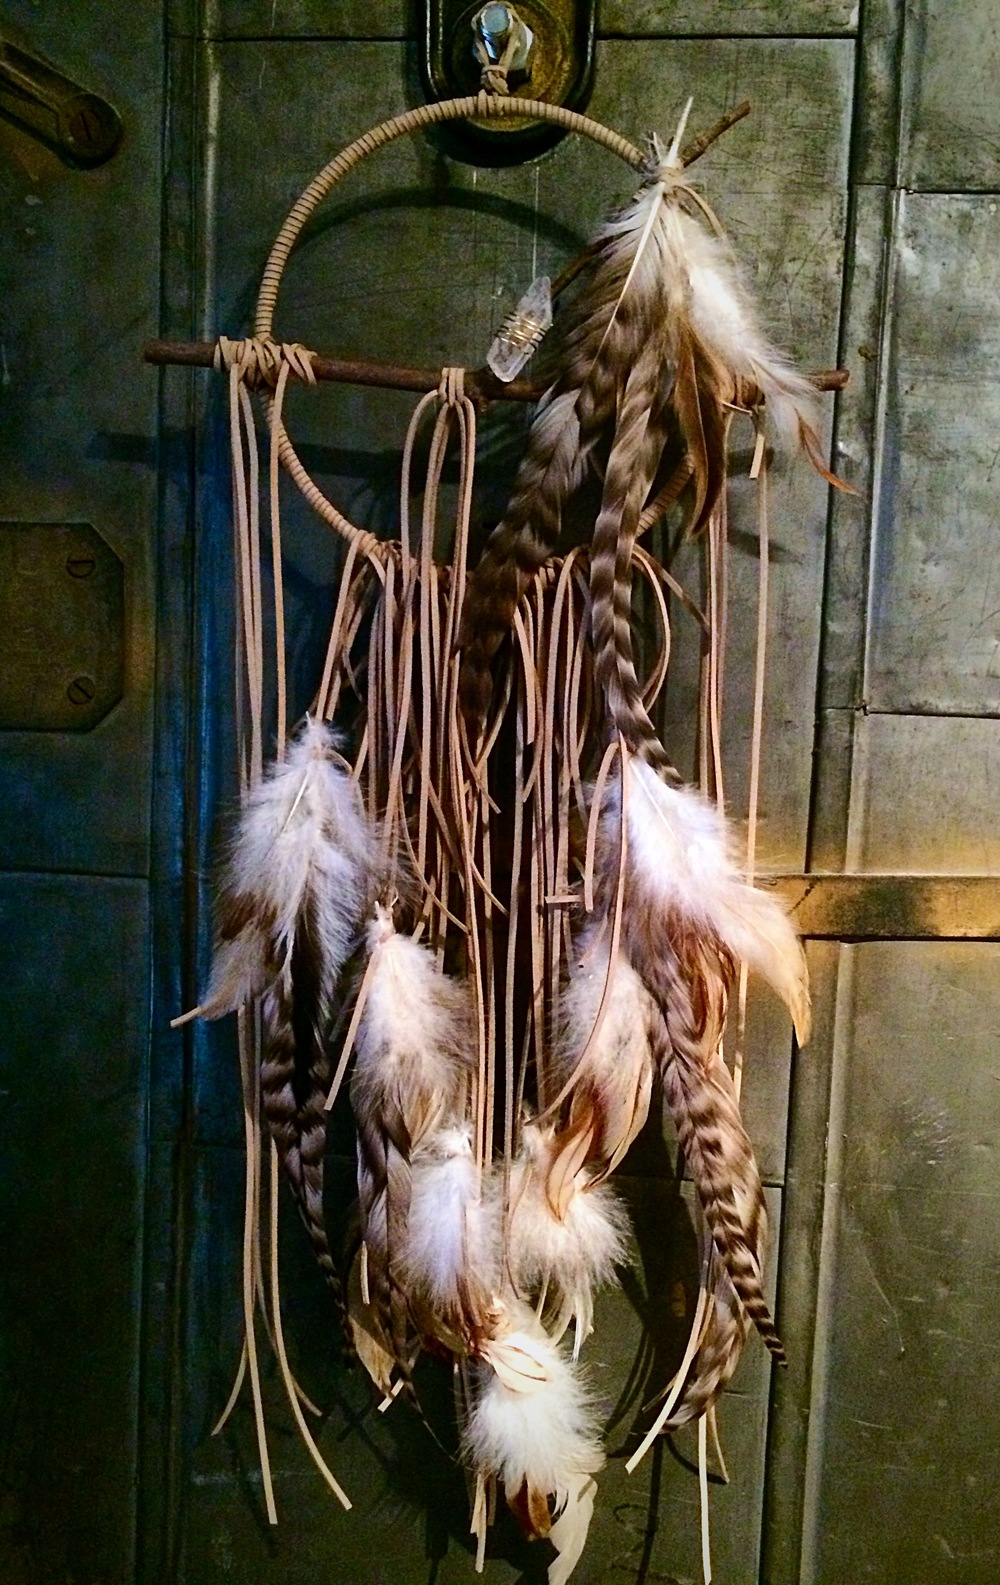 My finished dreamcatcher!